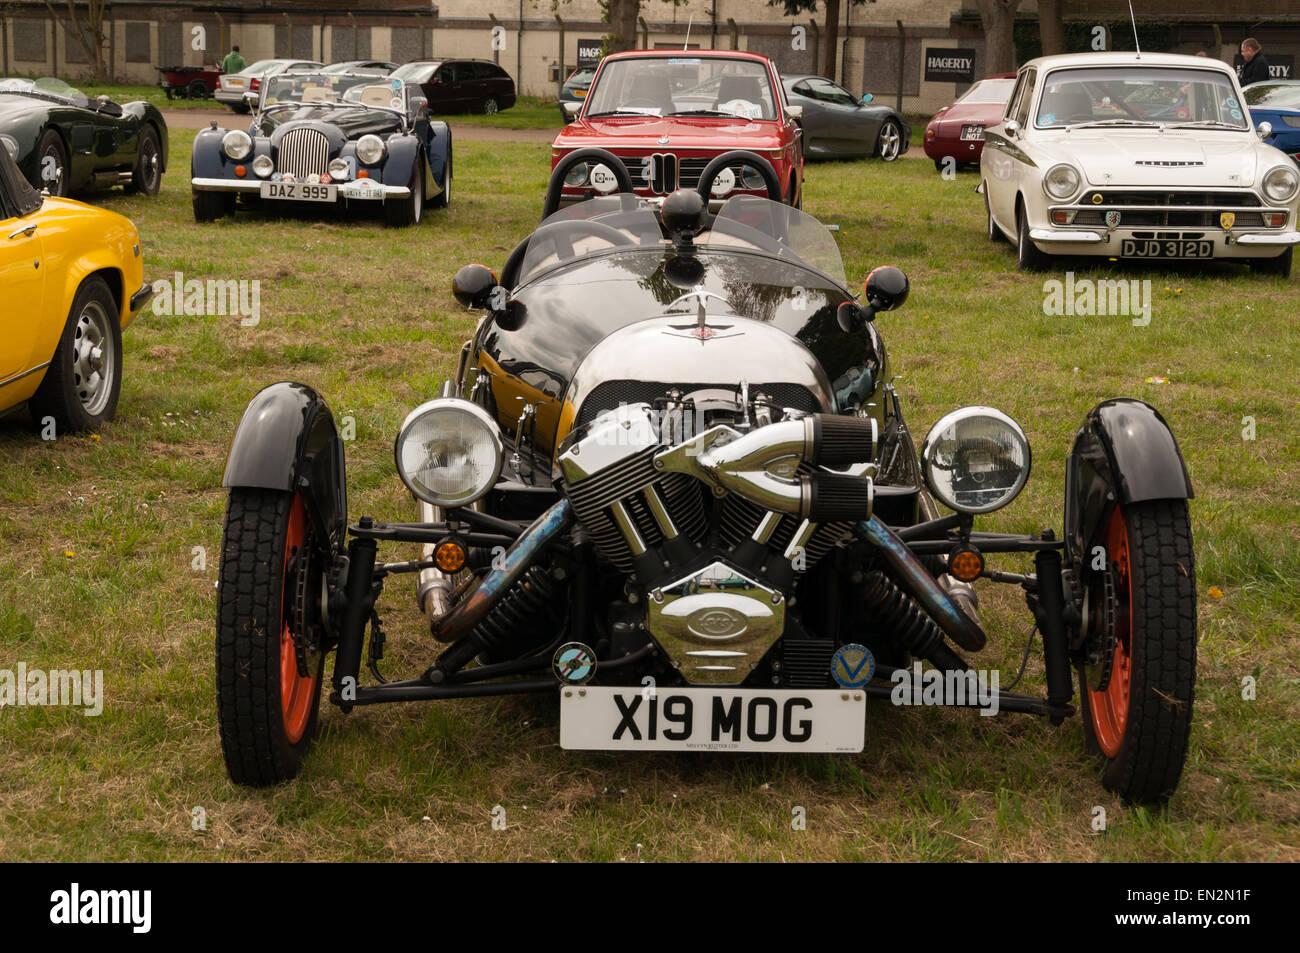 Morgan three wheeled vintage sports car at the 5th Sunday Brunch Scramble in Bicester Heritage, Oxfordshire, England - Stock Image